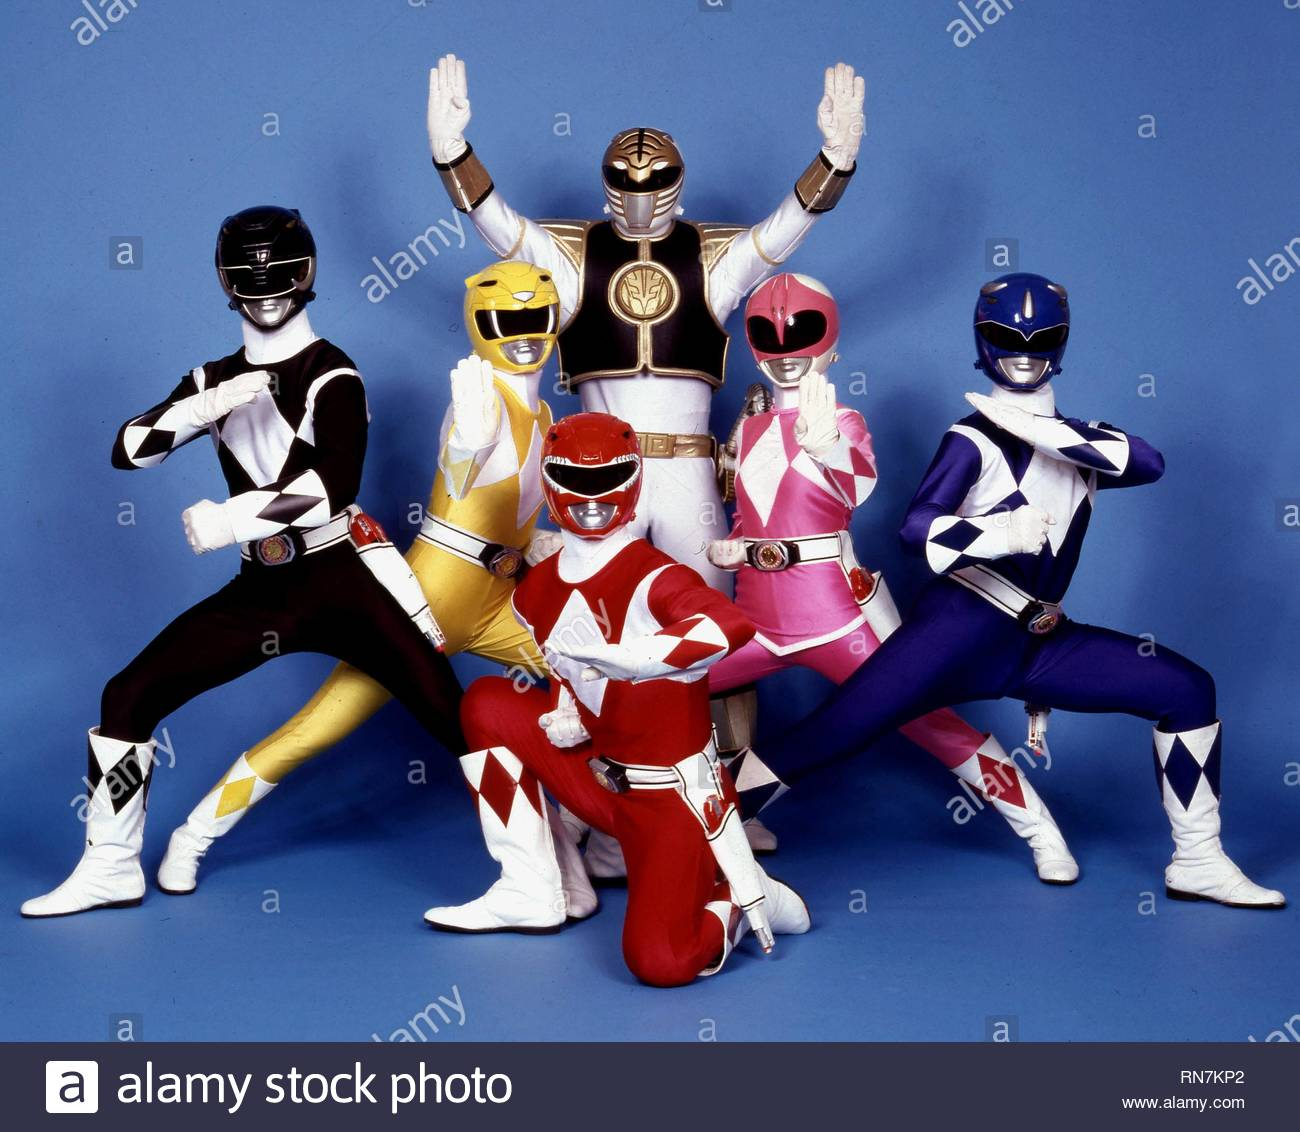 BLACK RANGER, YELLOW RANGER, RED RANGER, WHITE RANGER, PINK RANGER,BLUE RANGER, MIGHTY MORPHIN POWER RANGERS, 1993 - Stock Image